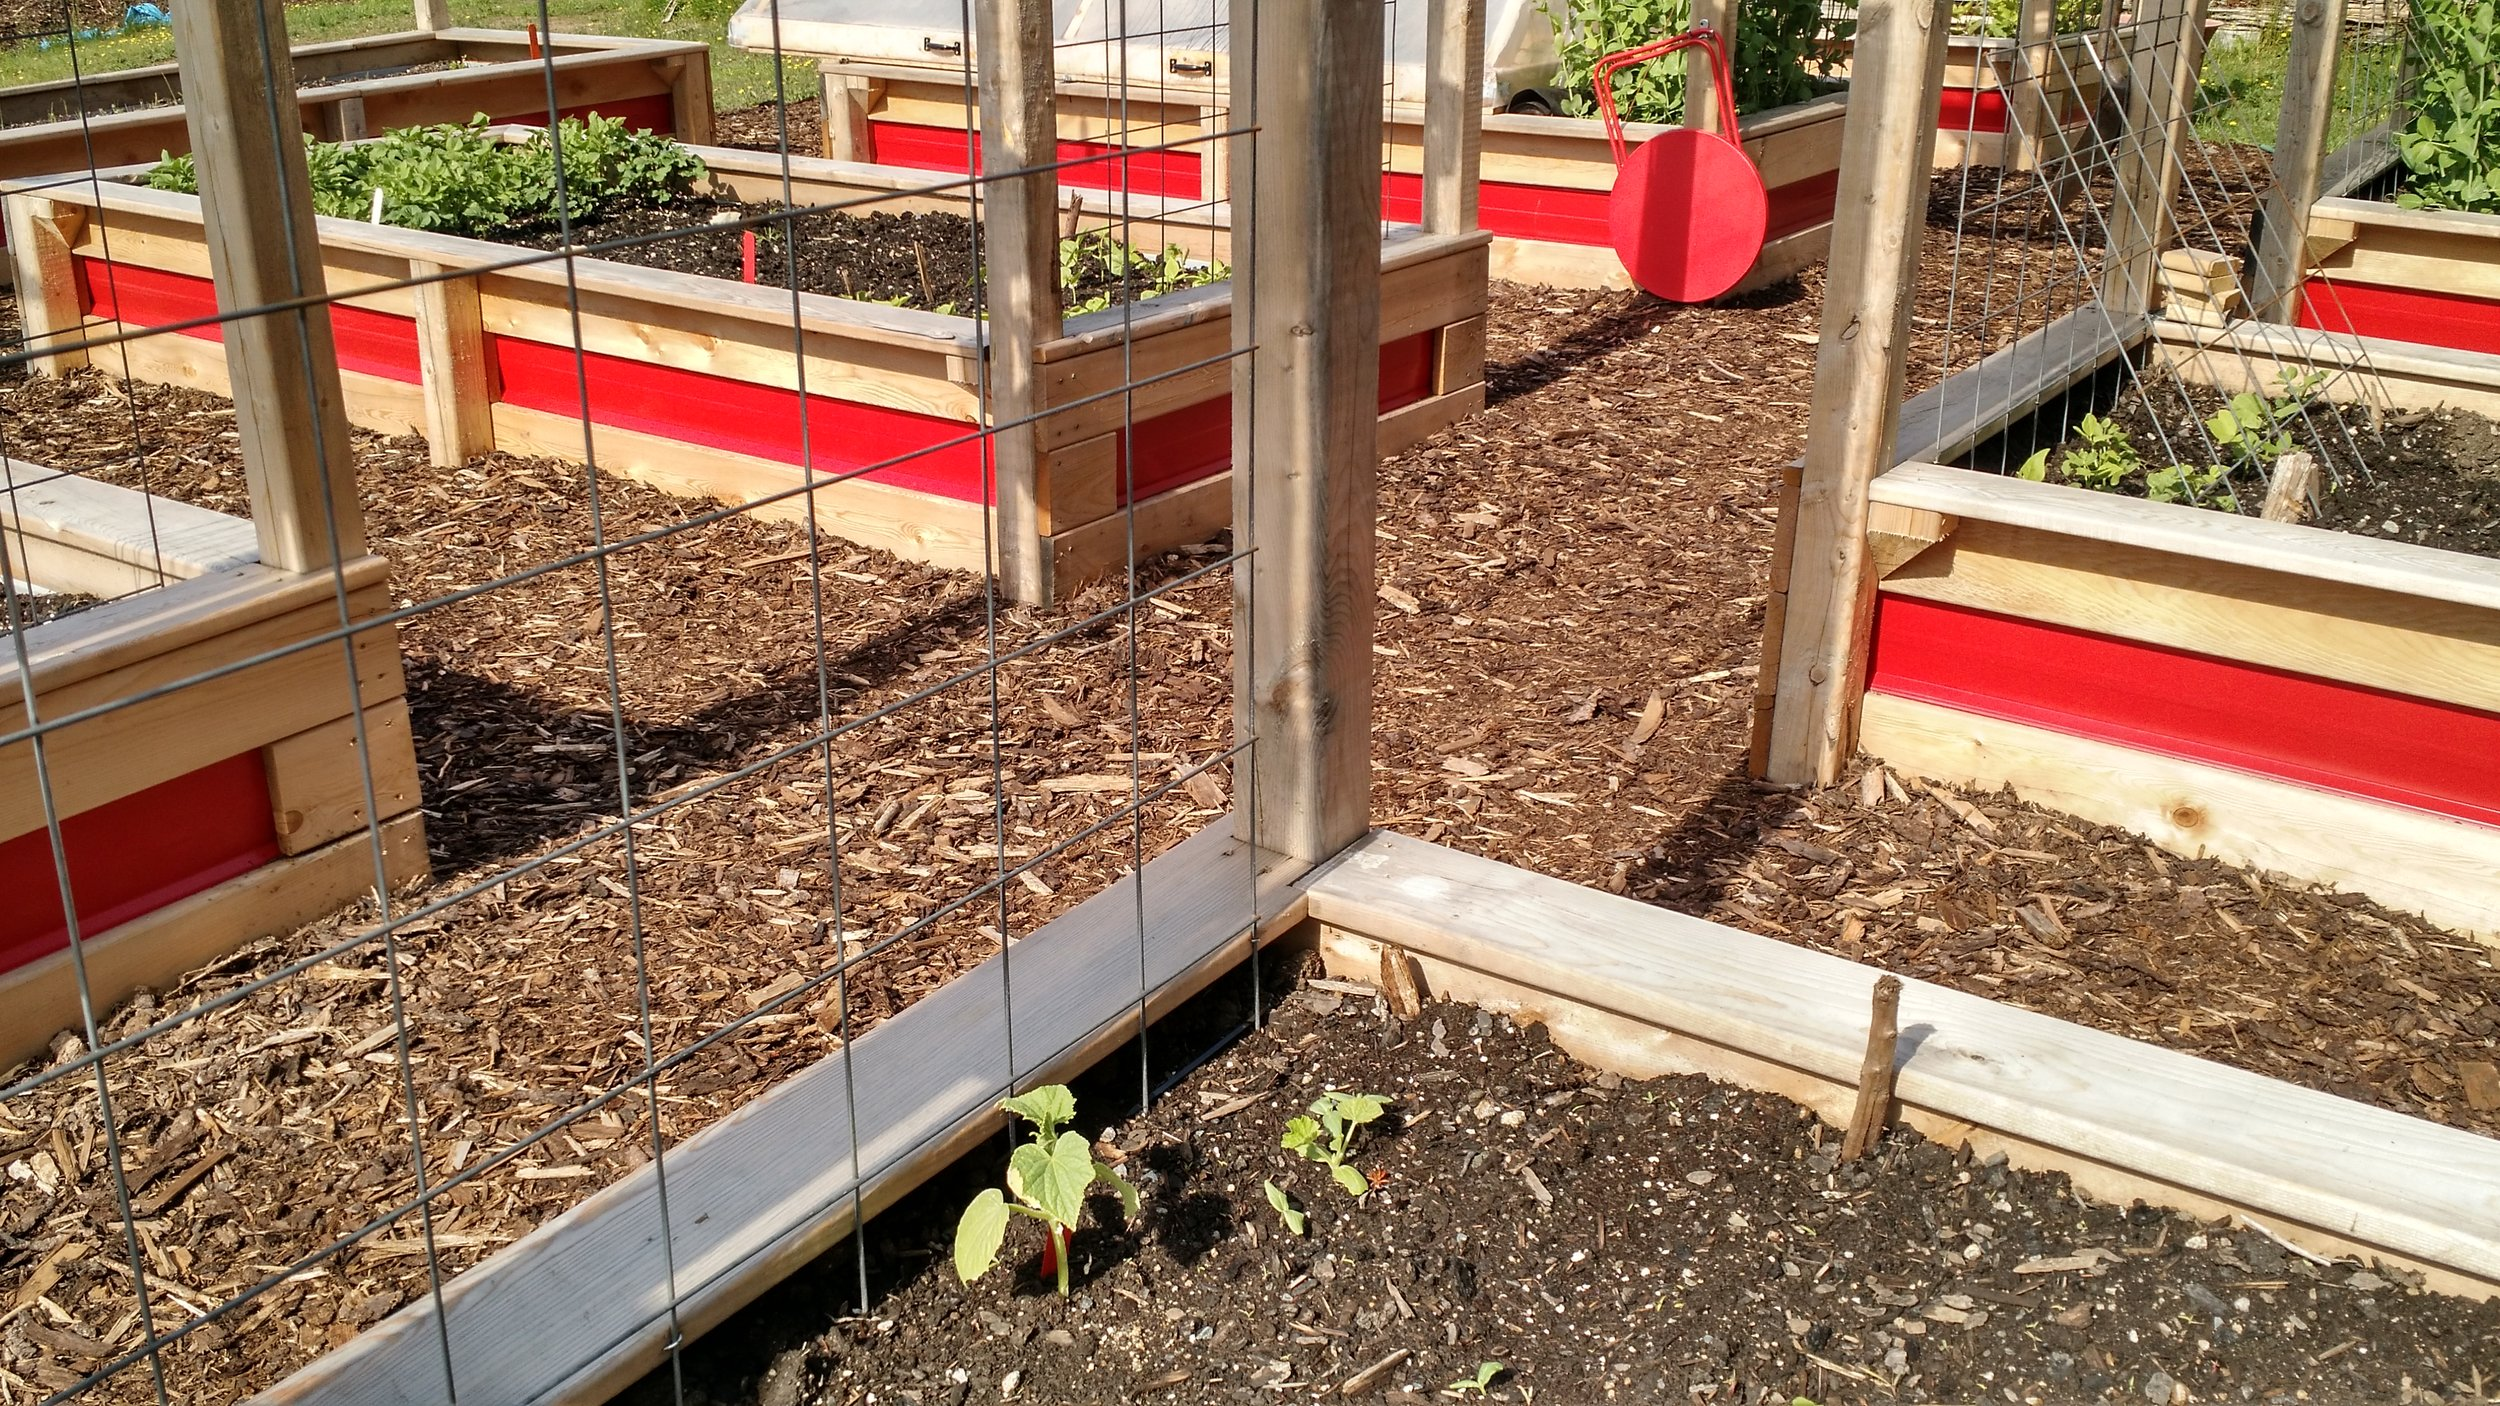 A quick pic of the beds. Some things are starting to come up...slowly, slowly. Others are in full-on grow mode - like the peas!